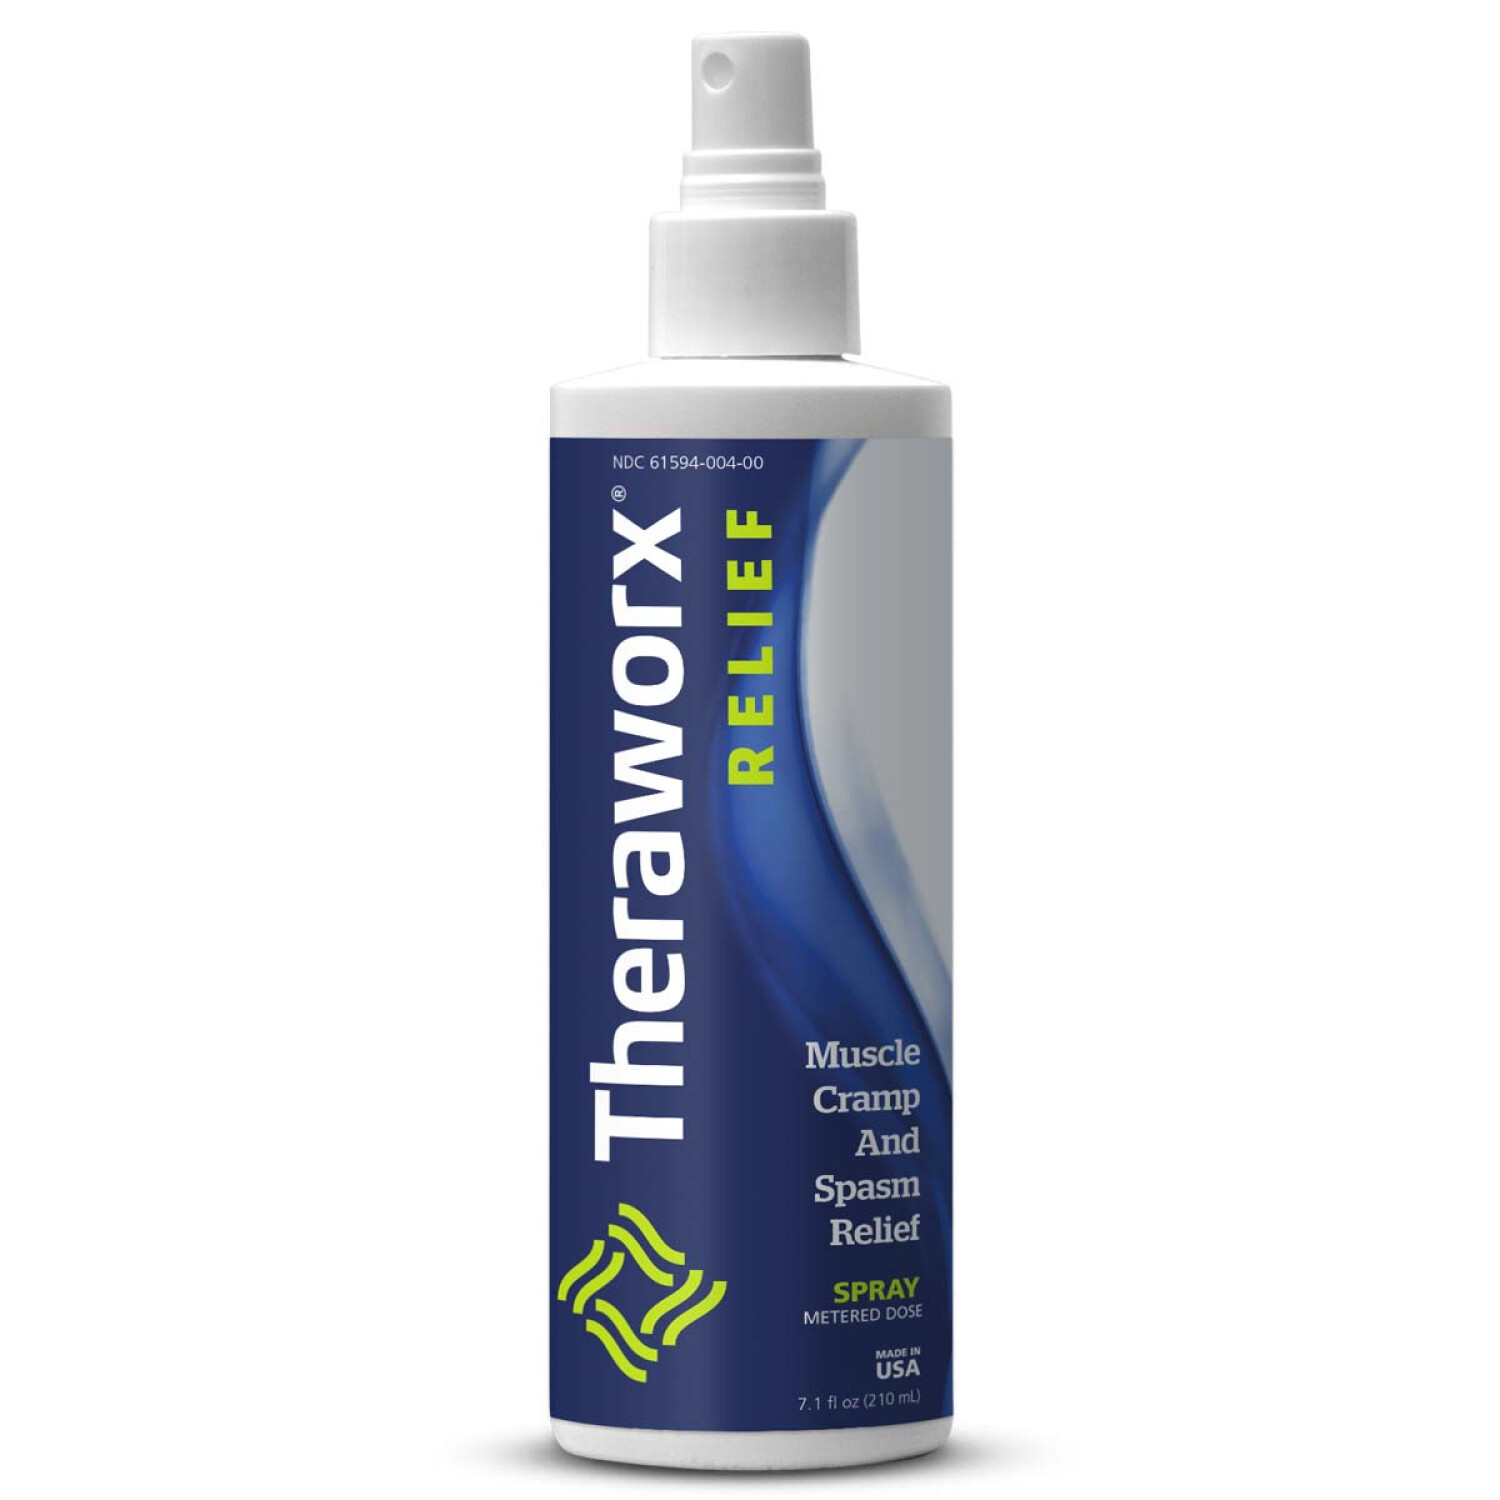 Theraworx Relief for Muscle Cramps and Spasms Spray - 1